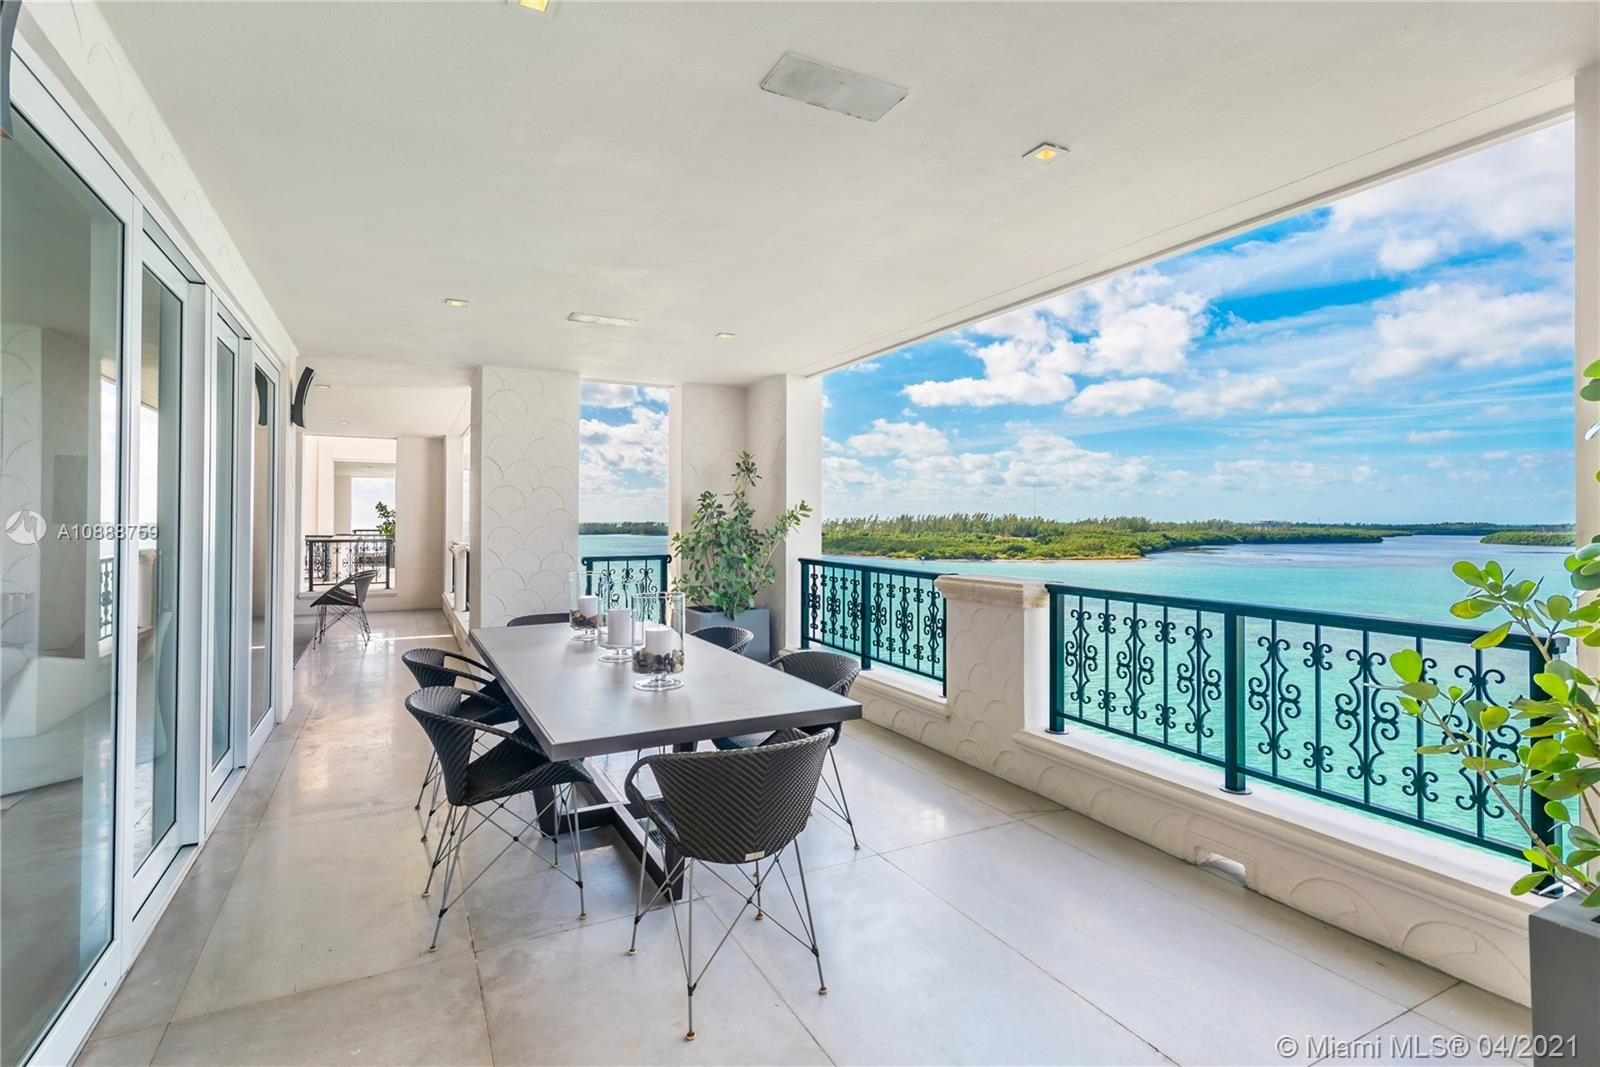 Photo 4 of Listing MLS a10888759 in 5282 Fisher Island Dr #5282 Miami FL 33109